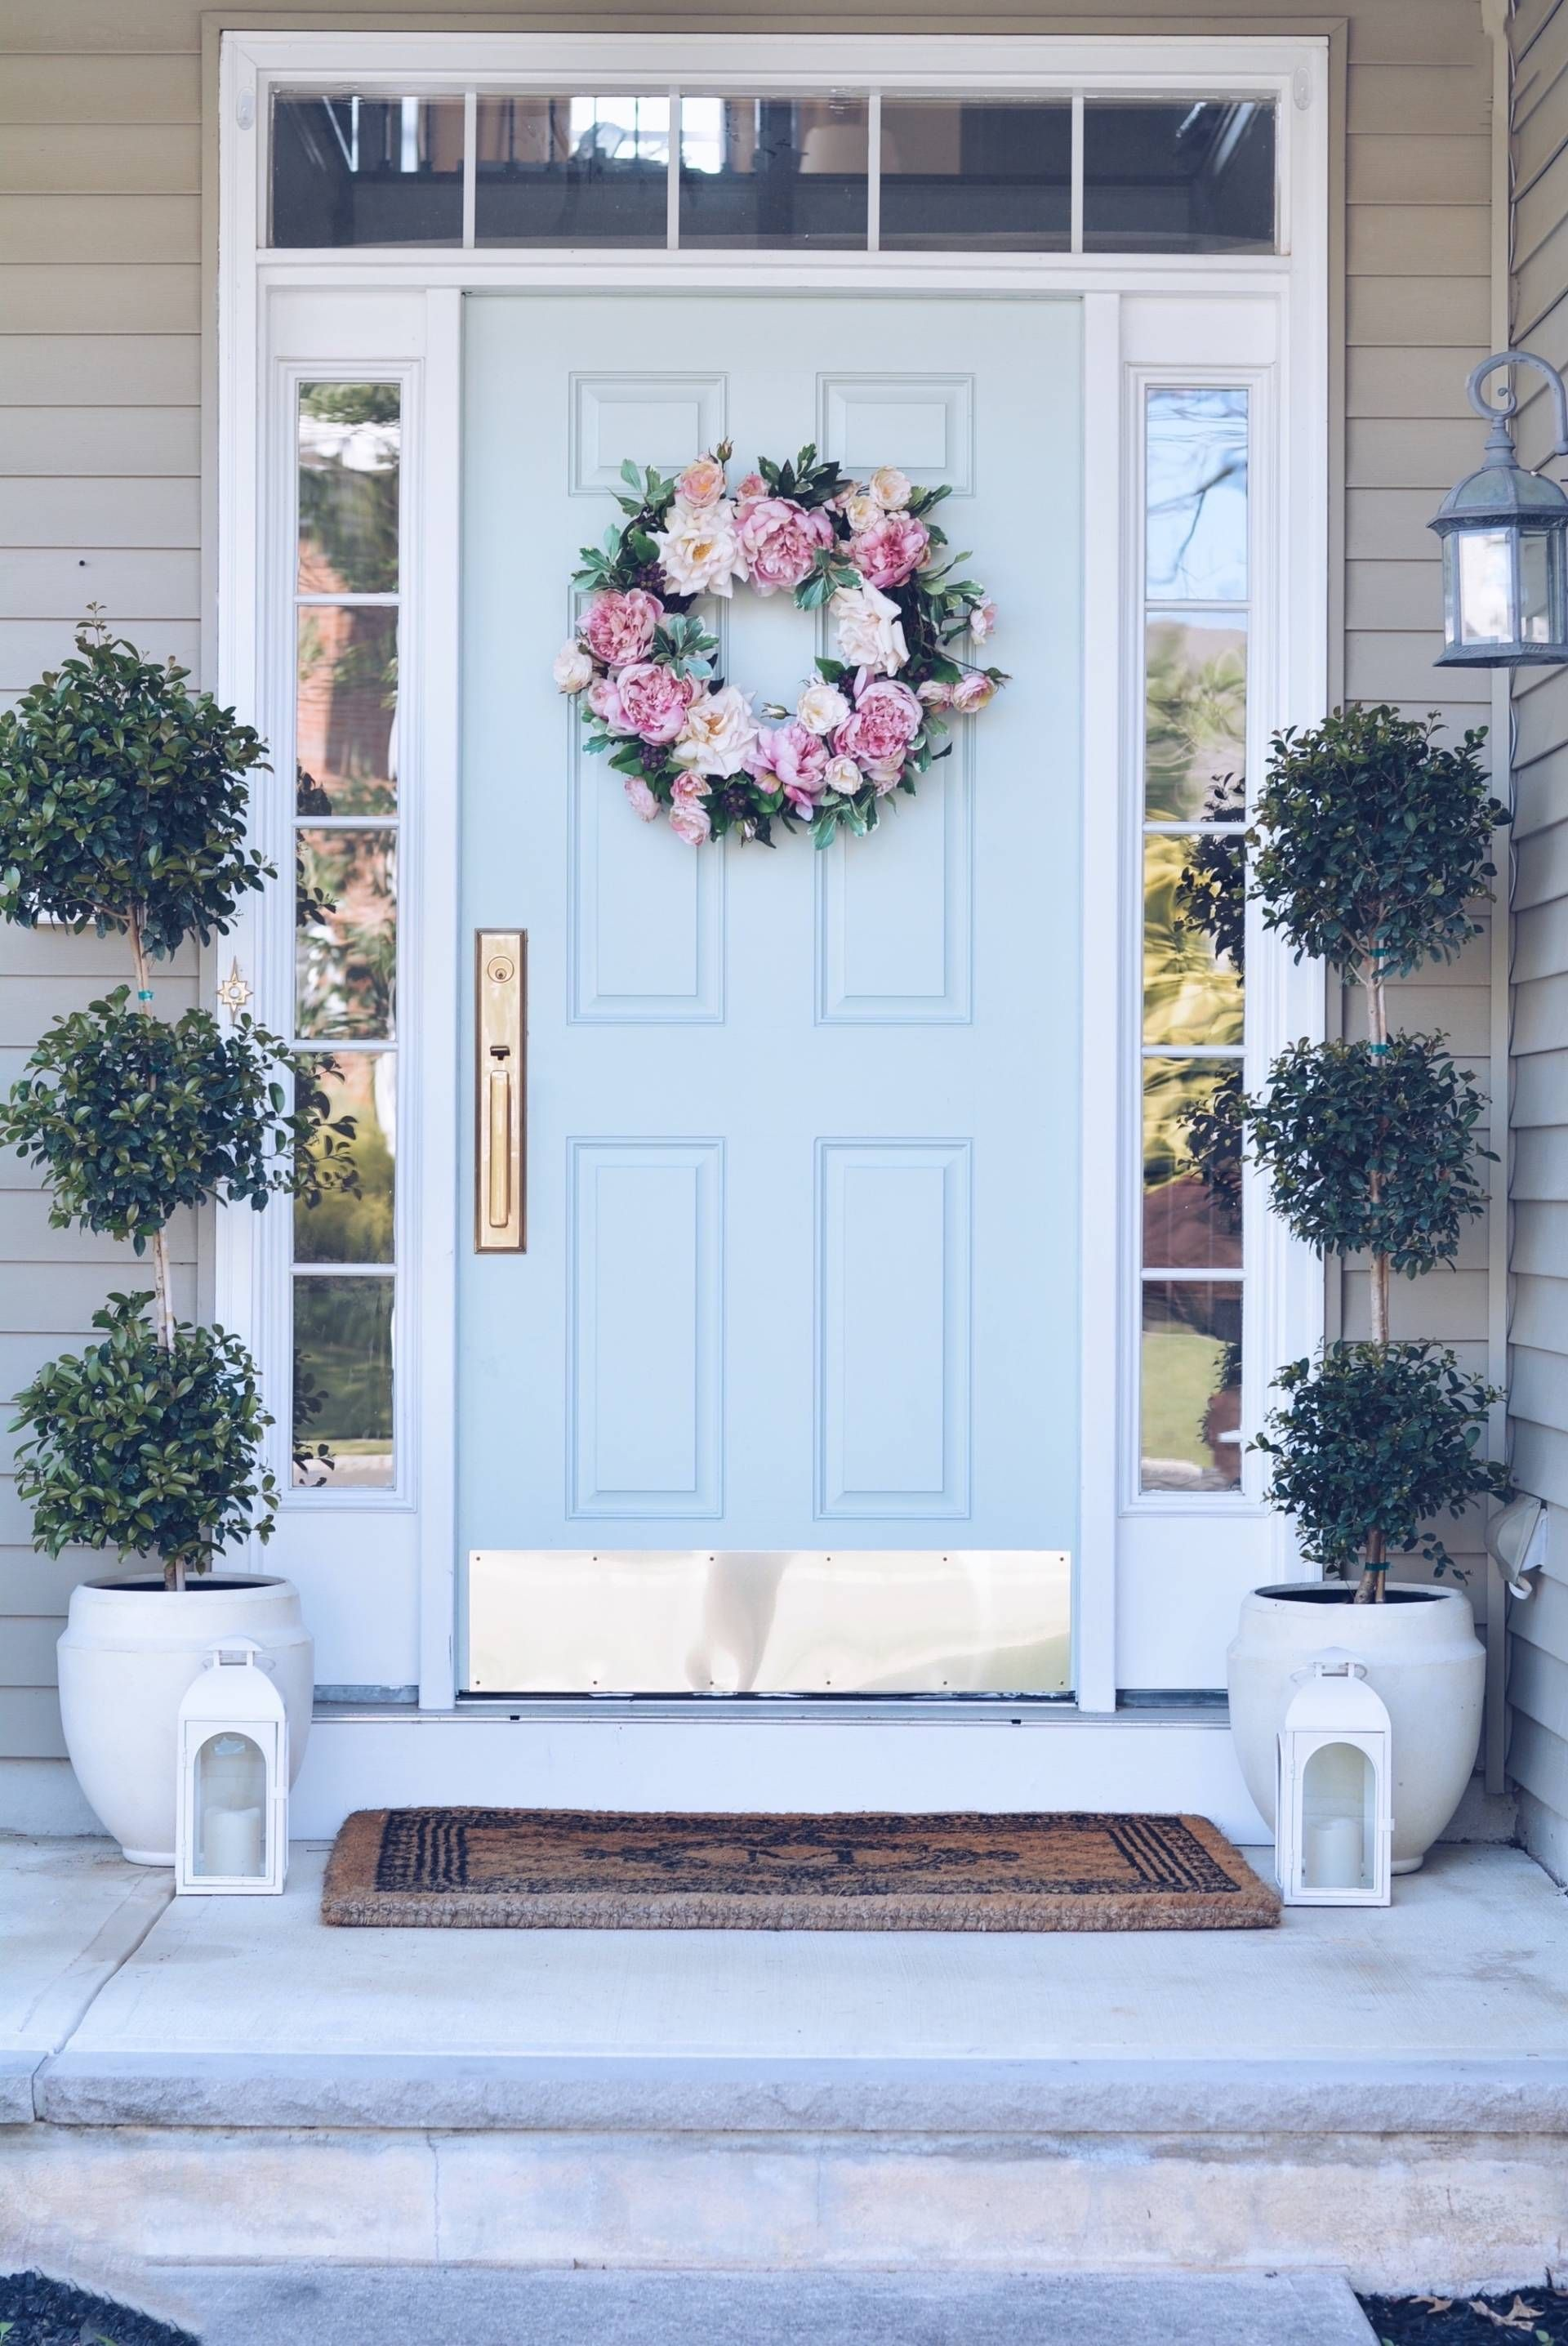 Summer Front Porch Ideas Endless Summer Hydrangeas The Pink Dream Front Porch Decorating Summer Front Porch Ideas Porch Colors